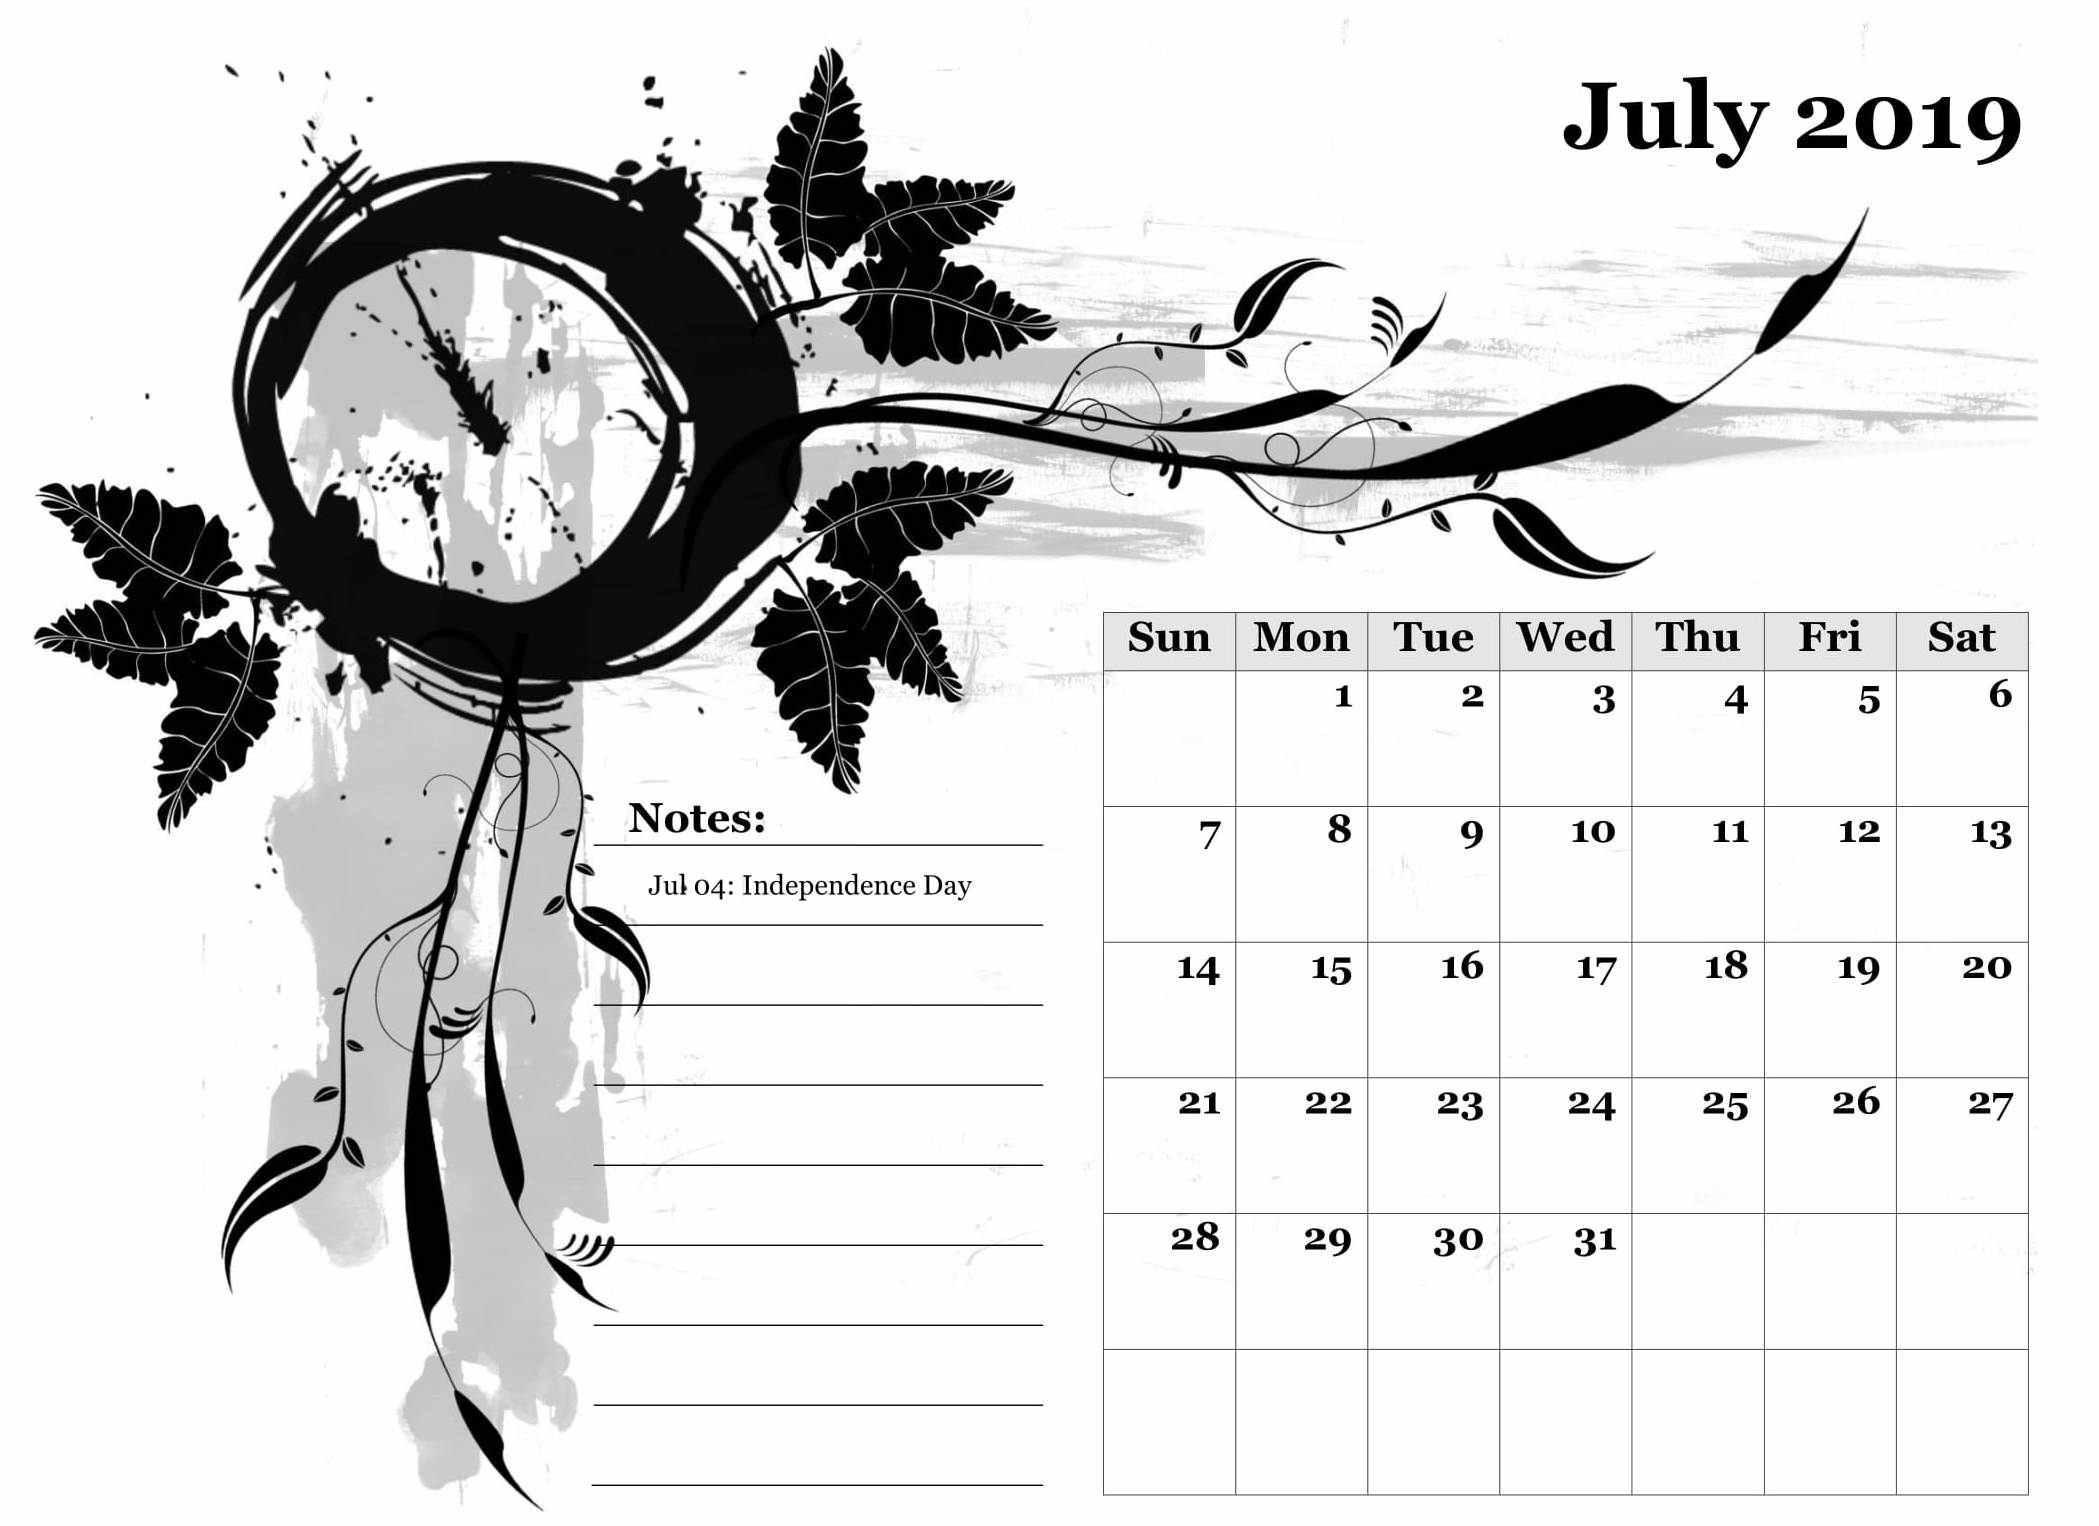 2019 July Calendar with Holidays